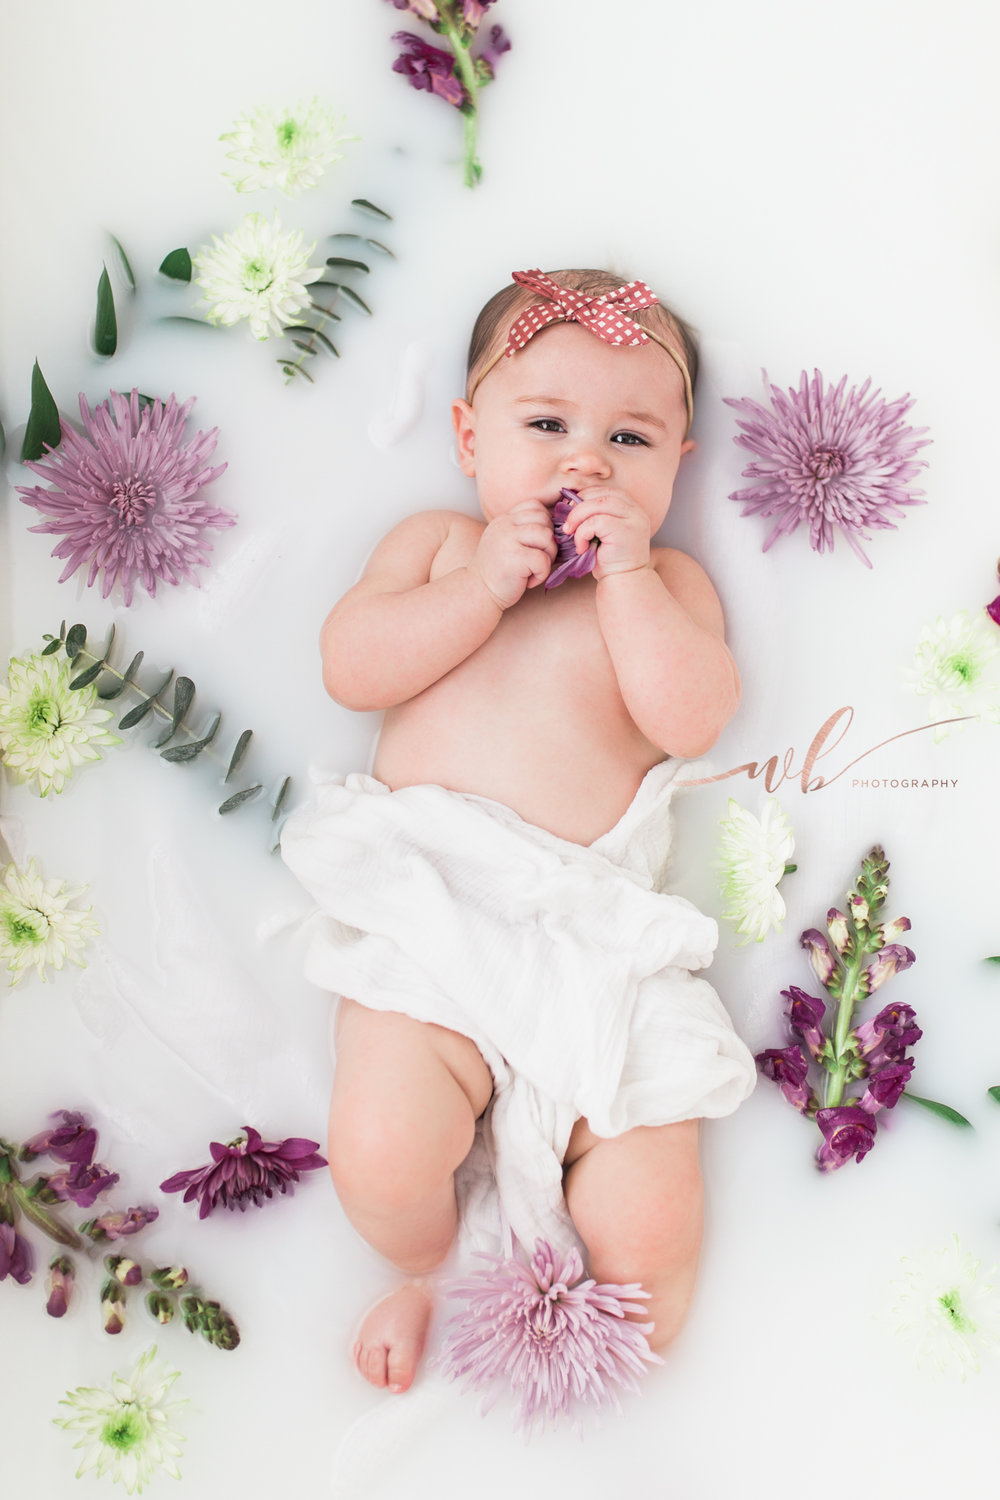 Milk Bath | 6 Month Photos | Utah — Lifestyle Newborn Photography Blog